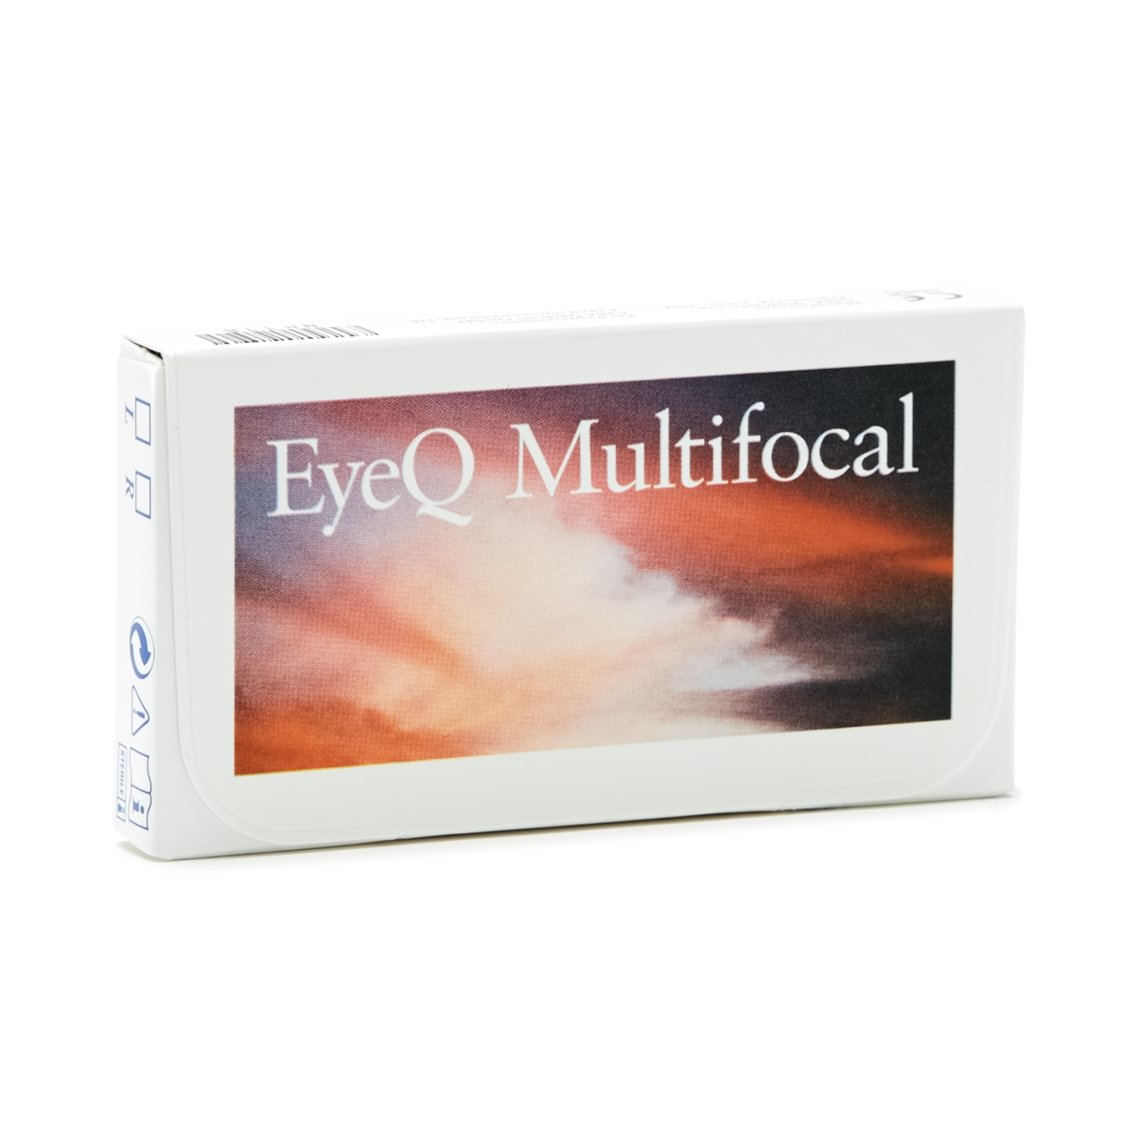 EyeQ Multifocal 3 st/box